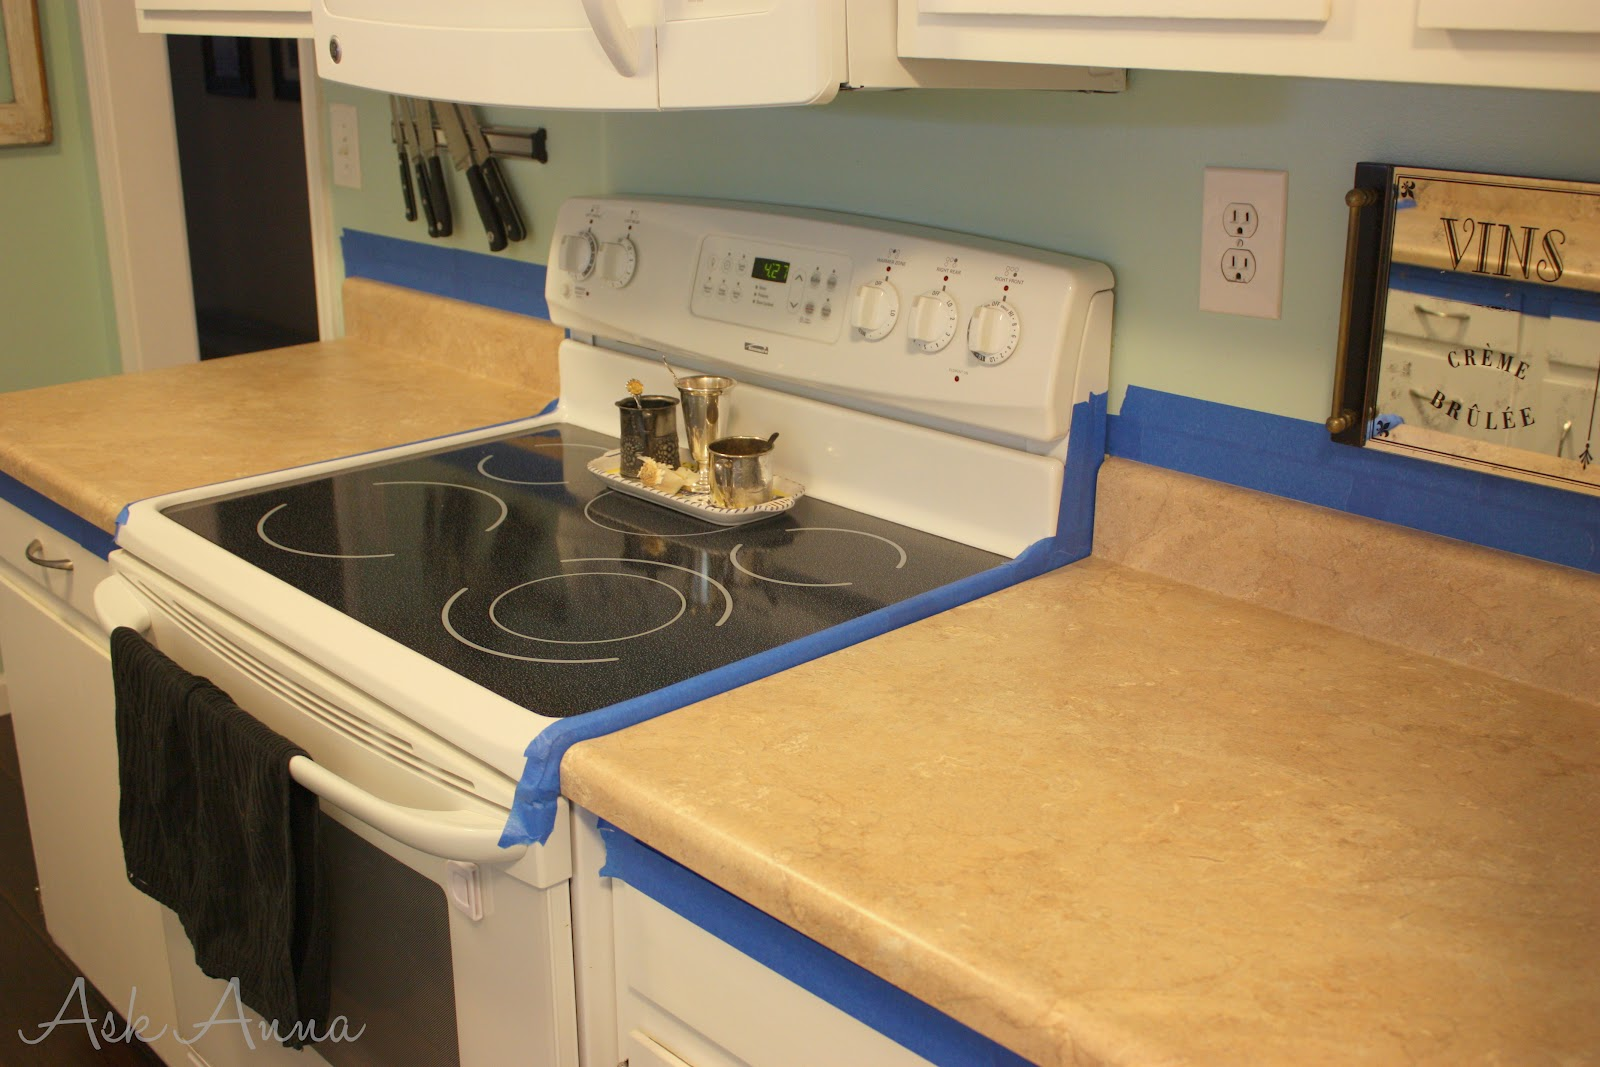 Giani Granite Countertop Paint Review Ask Anna - How to redo kitchen countertops